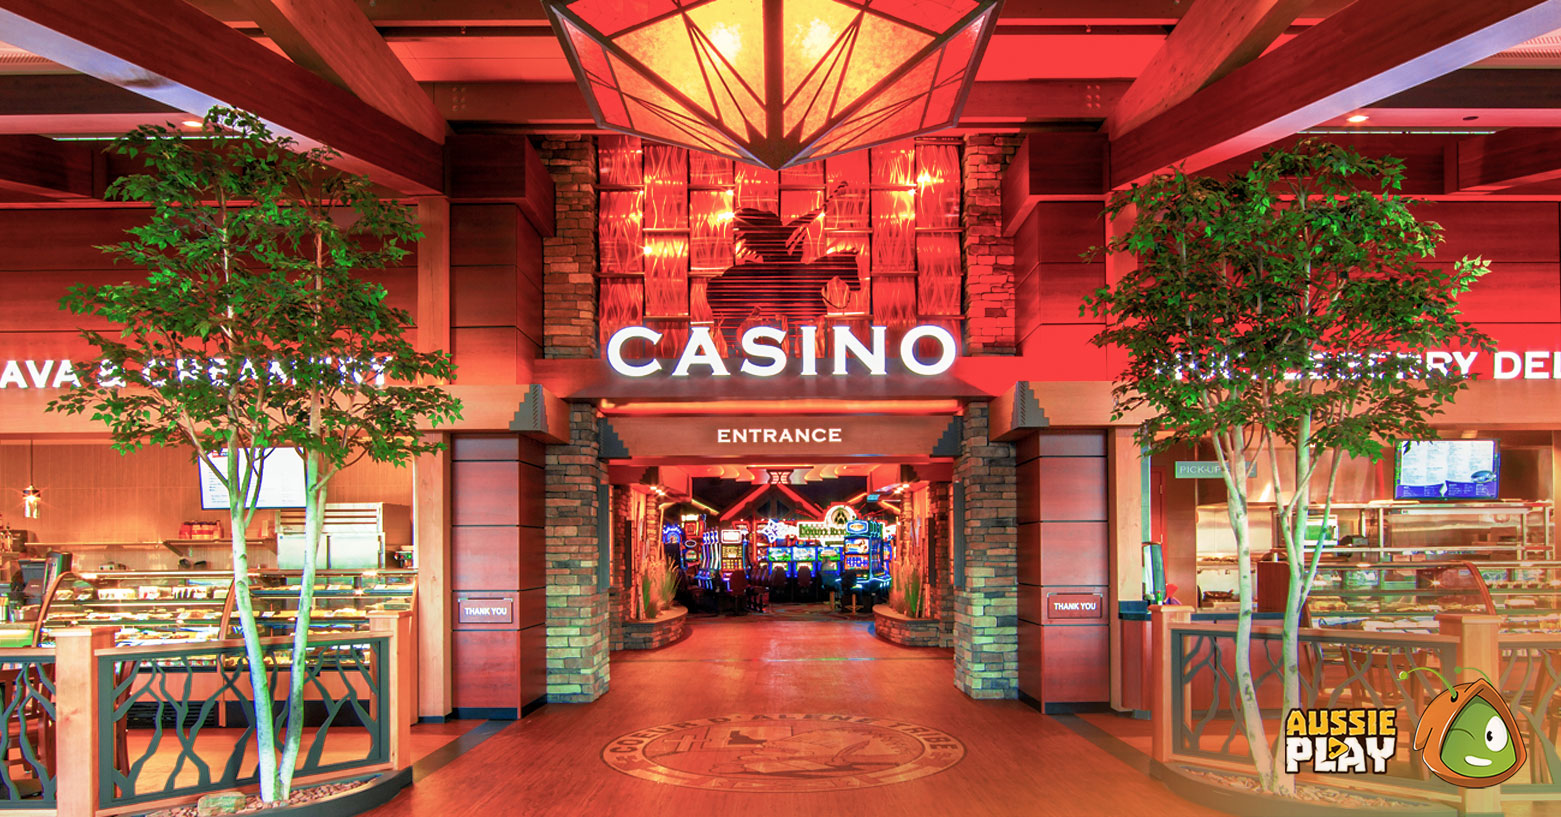 The Coeur d'Alene Casino Resort Hotel in Idaho